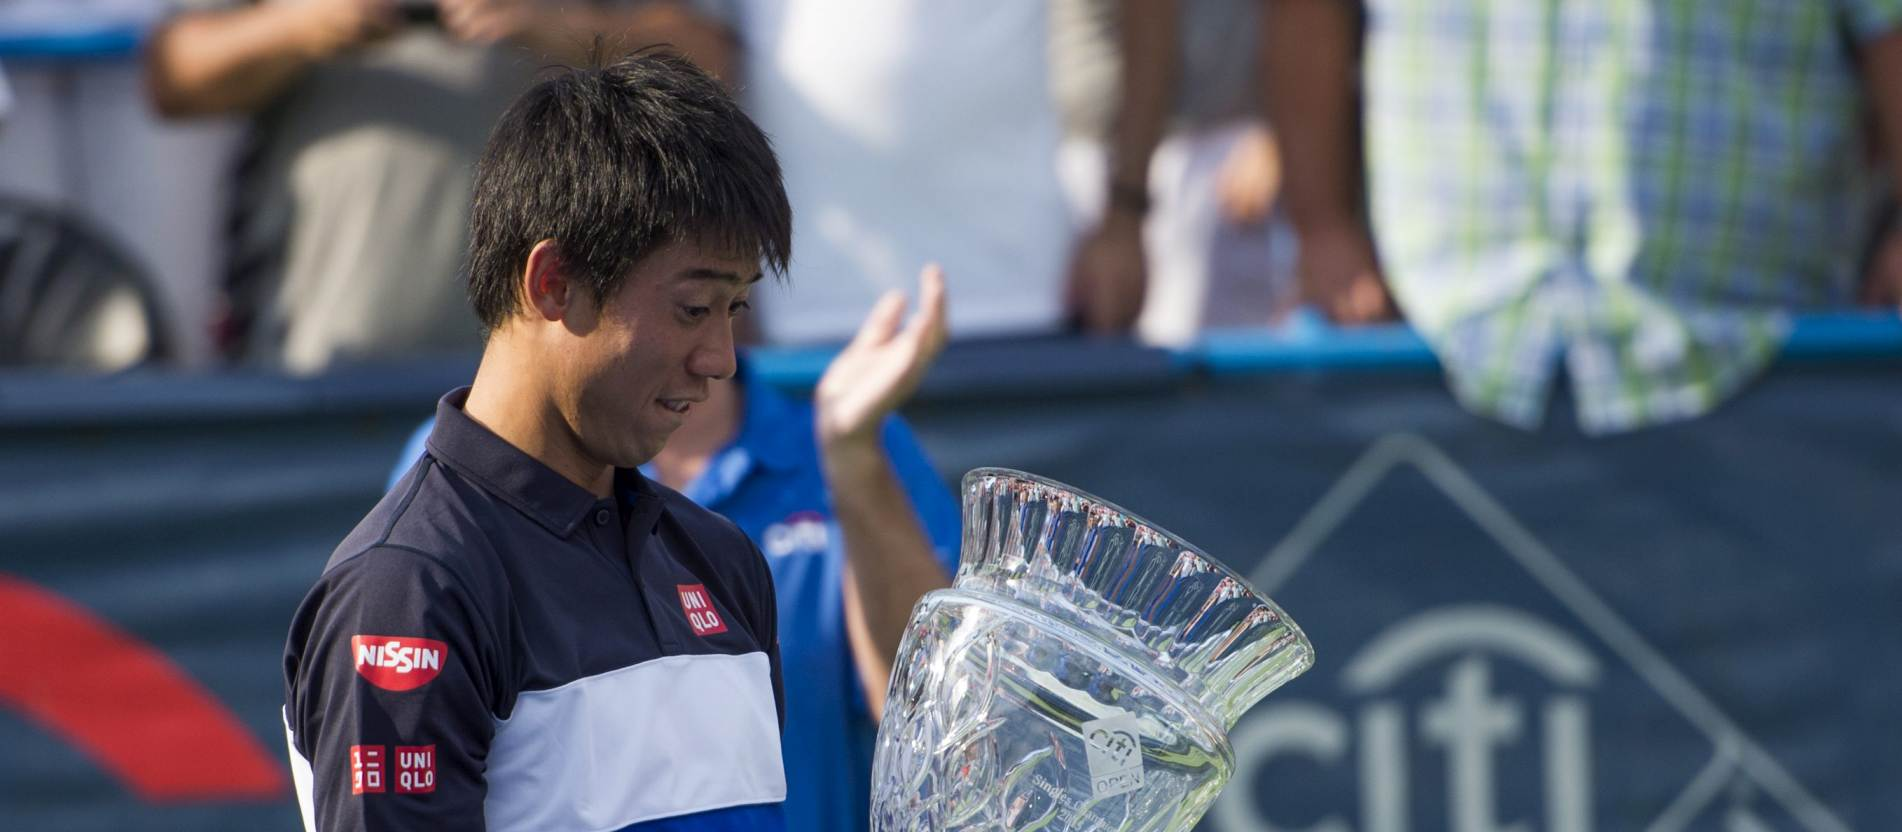 WTA WASHINGTON: Nishikori do desetog naslova u karijeri